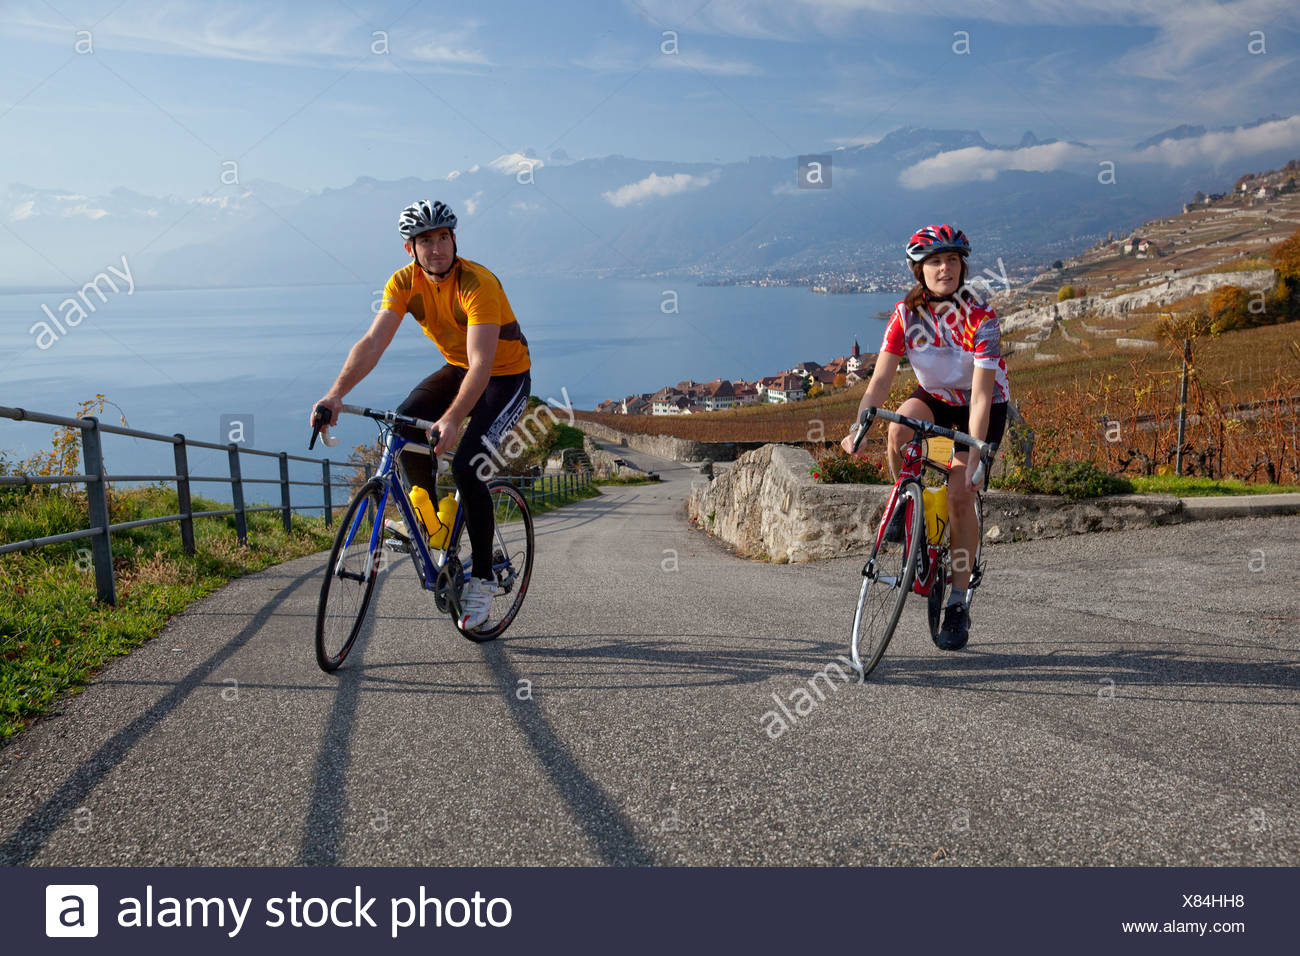 Cyclist, Rivaz, Lavaux, autumn, Castle, lake, lakes, canton, VD, Vaud, lake Geneva, Lac Leman, wine, shoots, wine, bicycle, bicy - Stock Image